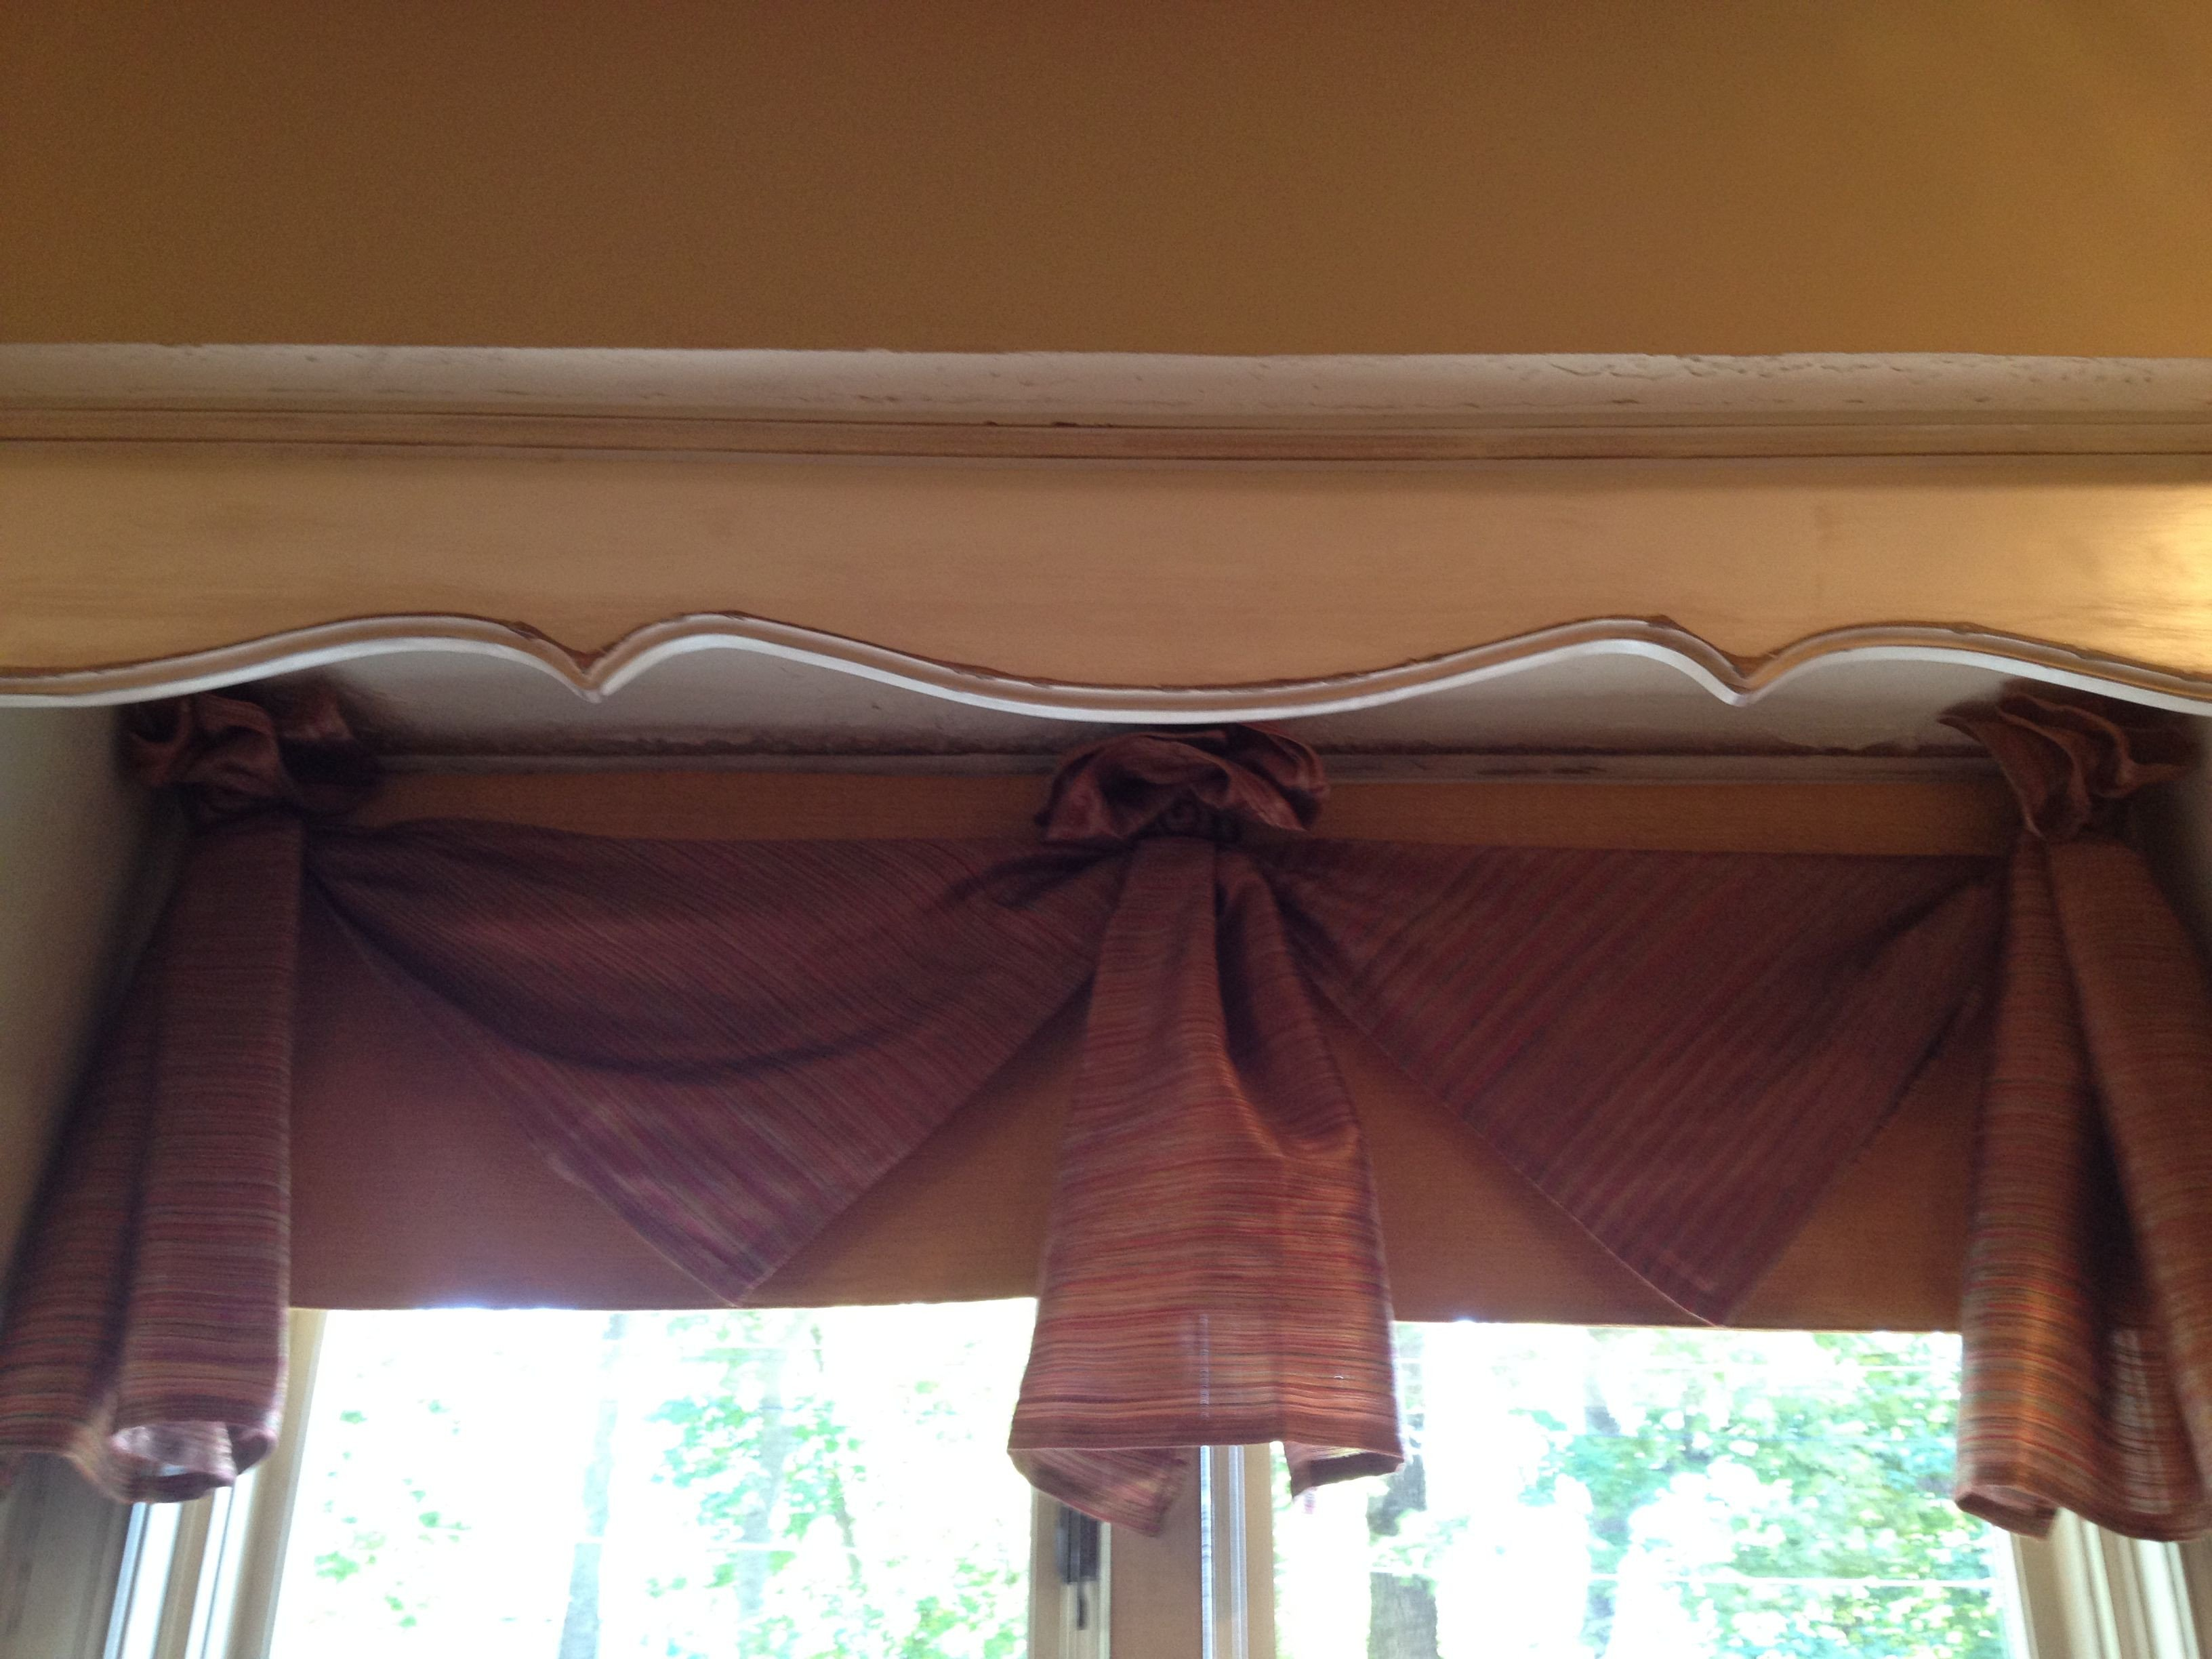 Bedroom Curtain Ideas Small Windows Elegant Diy Valance for Small Window Above Sink I Wanted something